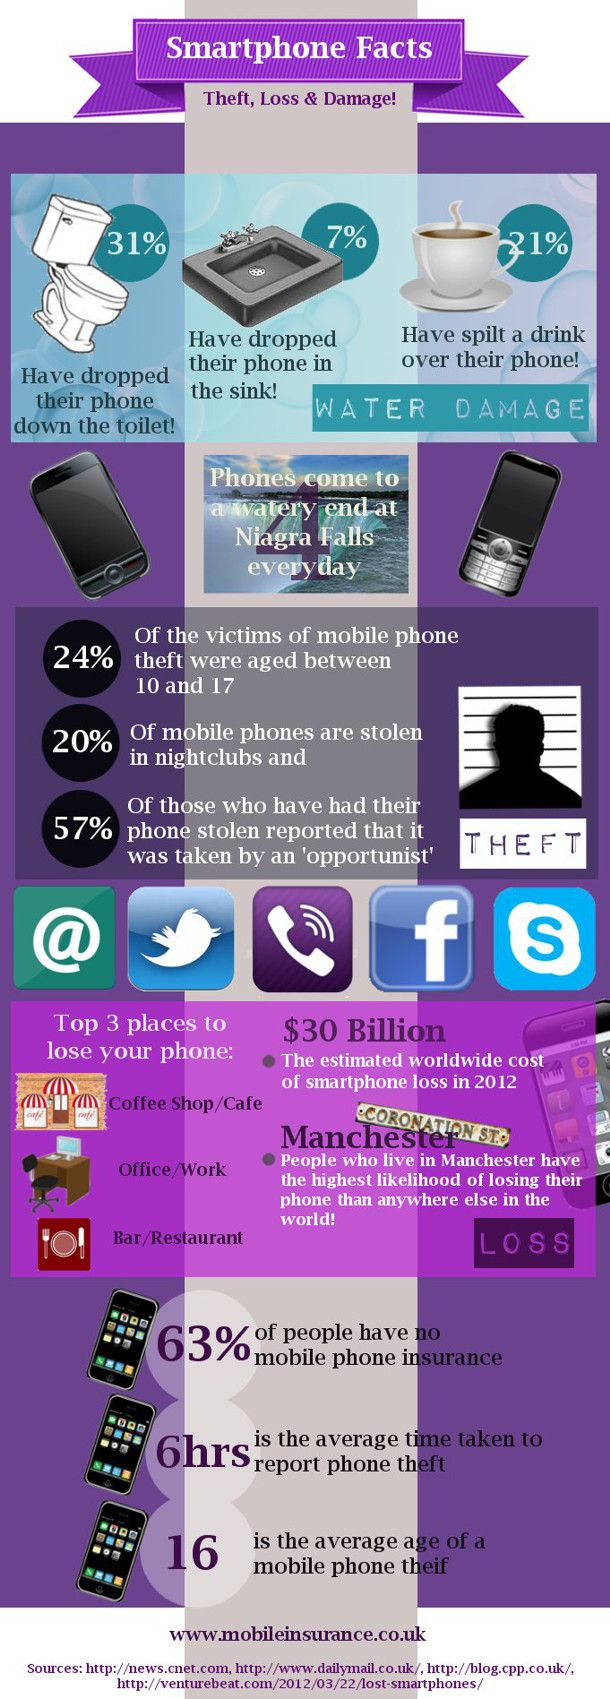 Smartphone Facts Smartphone Infographic Infographic Marketing